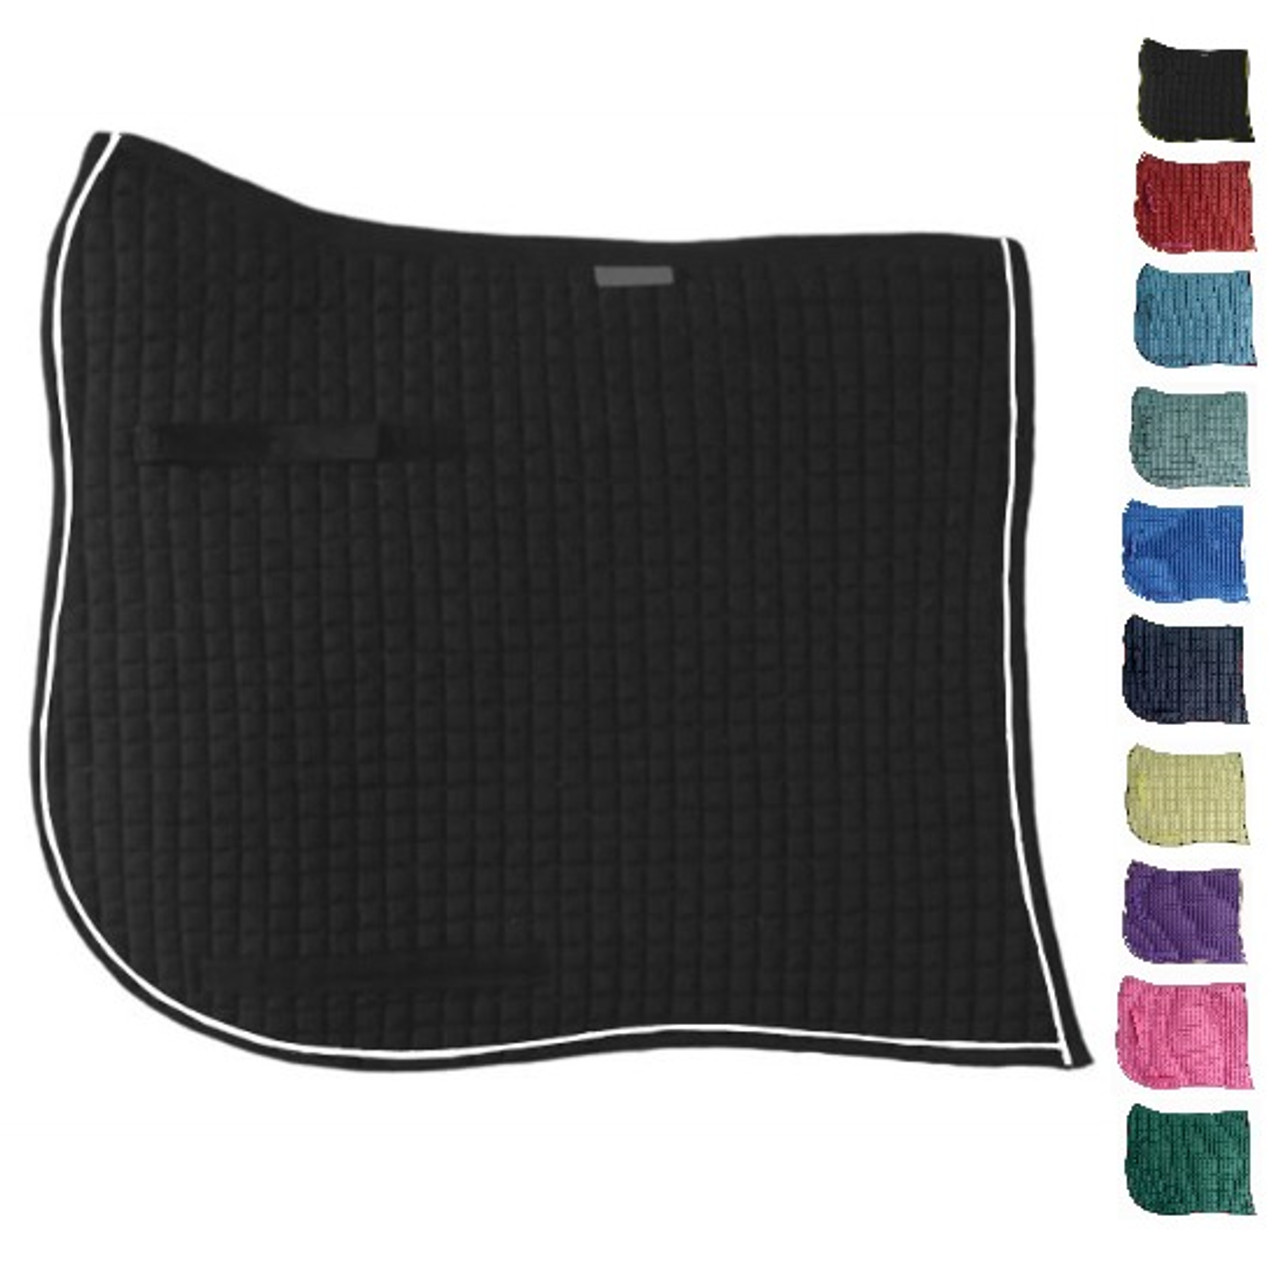 Custom Order Swallow-Tail Dressage Saddle Pads with Equu-Felt | PRI Pacific  Rim International